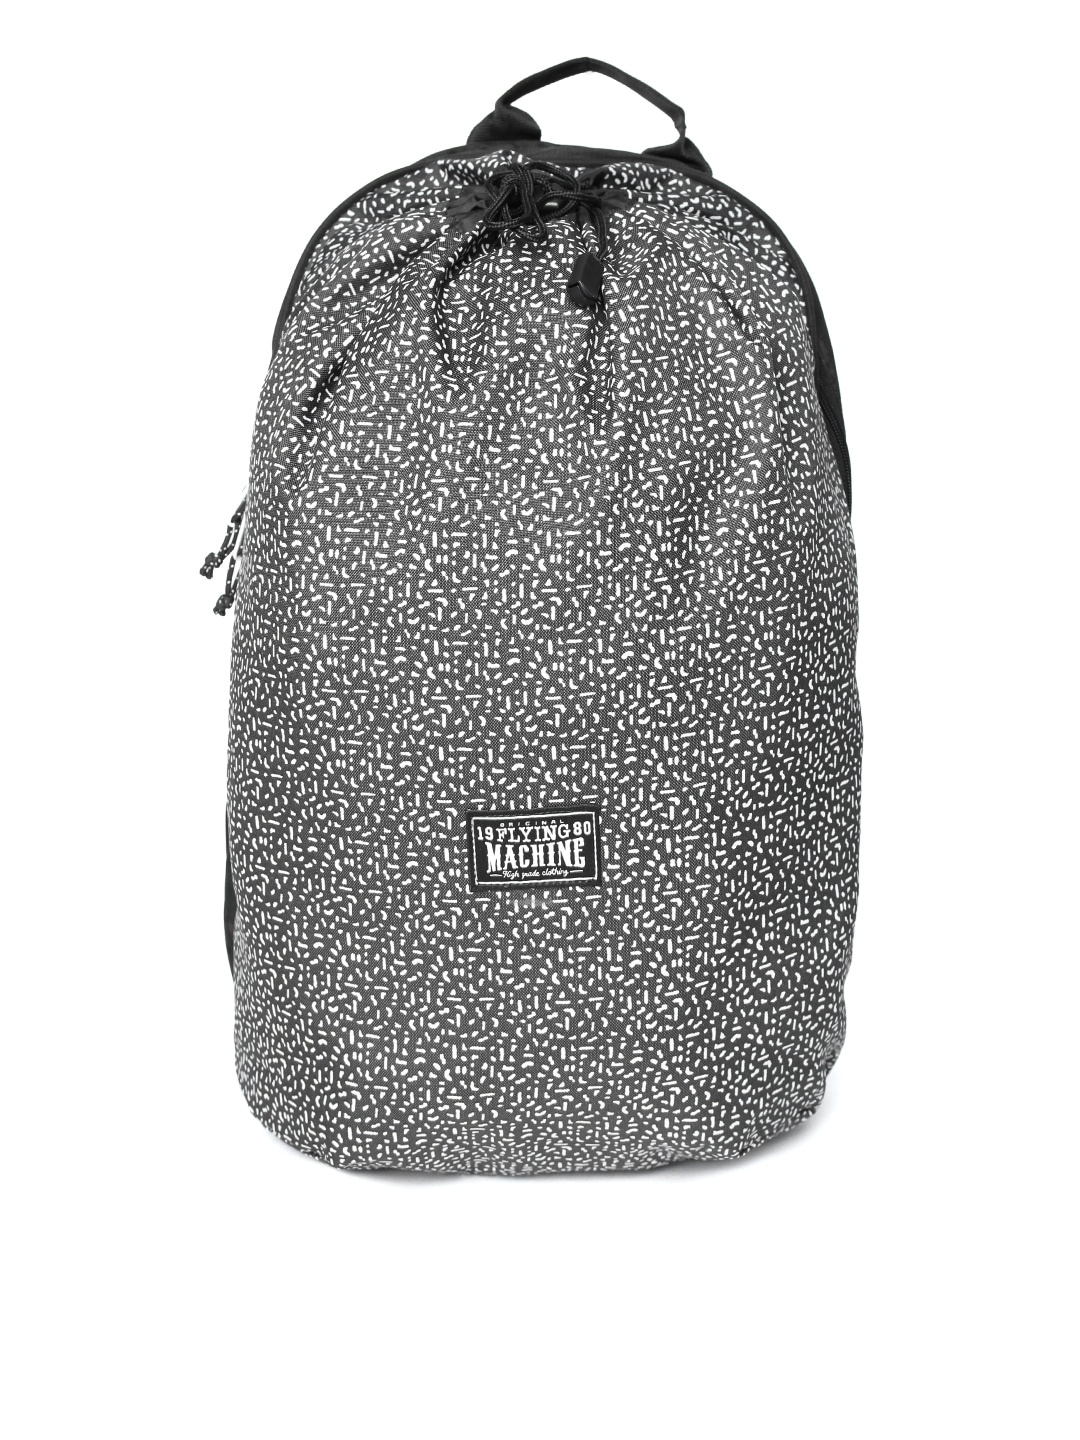 a36df02a9872 Mens Backpack - Buy Mens Backpack online in India